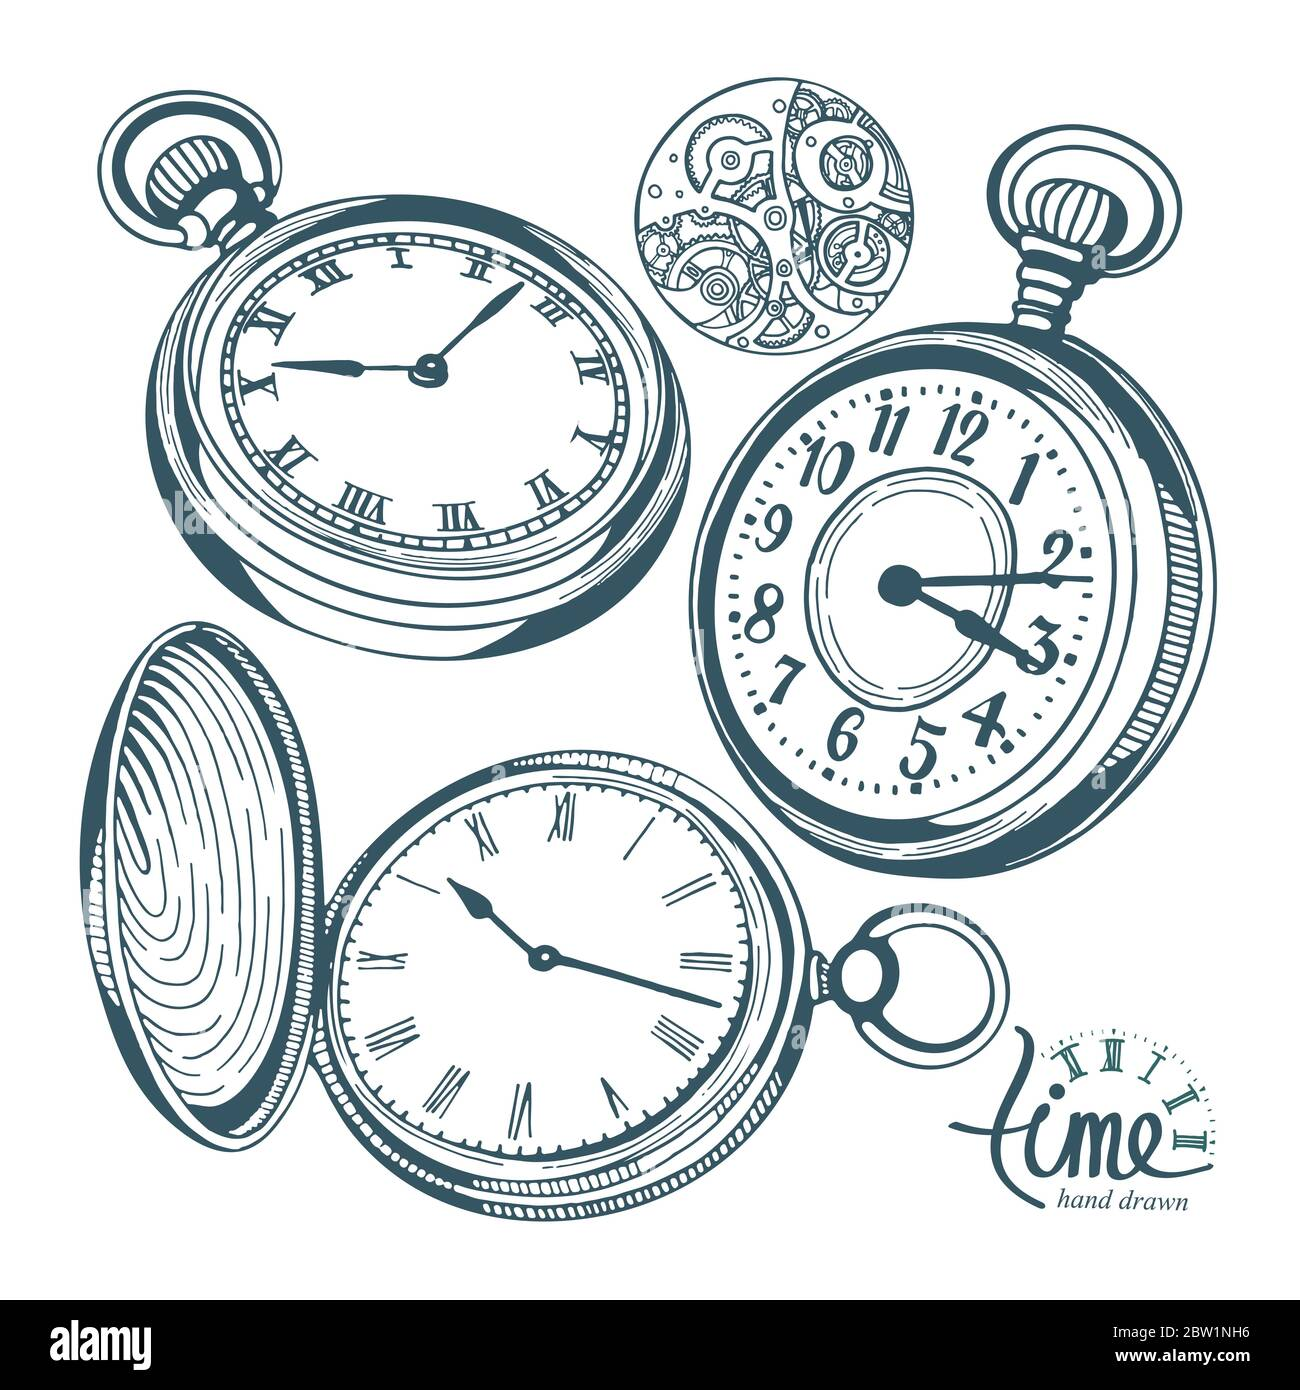 Pocket Watch Hand Drawn Pocket Watch Vector Illustrations Set Sketch Drawing Old Clock Icons Set Stock Vector Image Art Alamy A pocket watch (or pocketwatch) is a watch that is made to be carried in a pocket, as opposed to a wristwatch, which is strapped to the wrist. https www alamy com pocket watch hand drawn pocket watch vector illustrations set sketch drawing old clock icons set image359612658 html